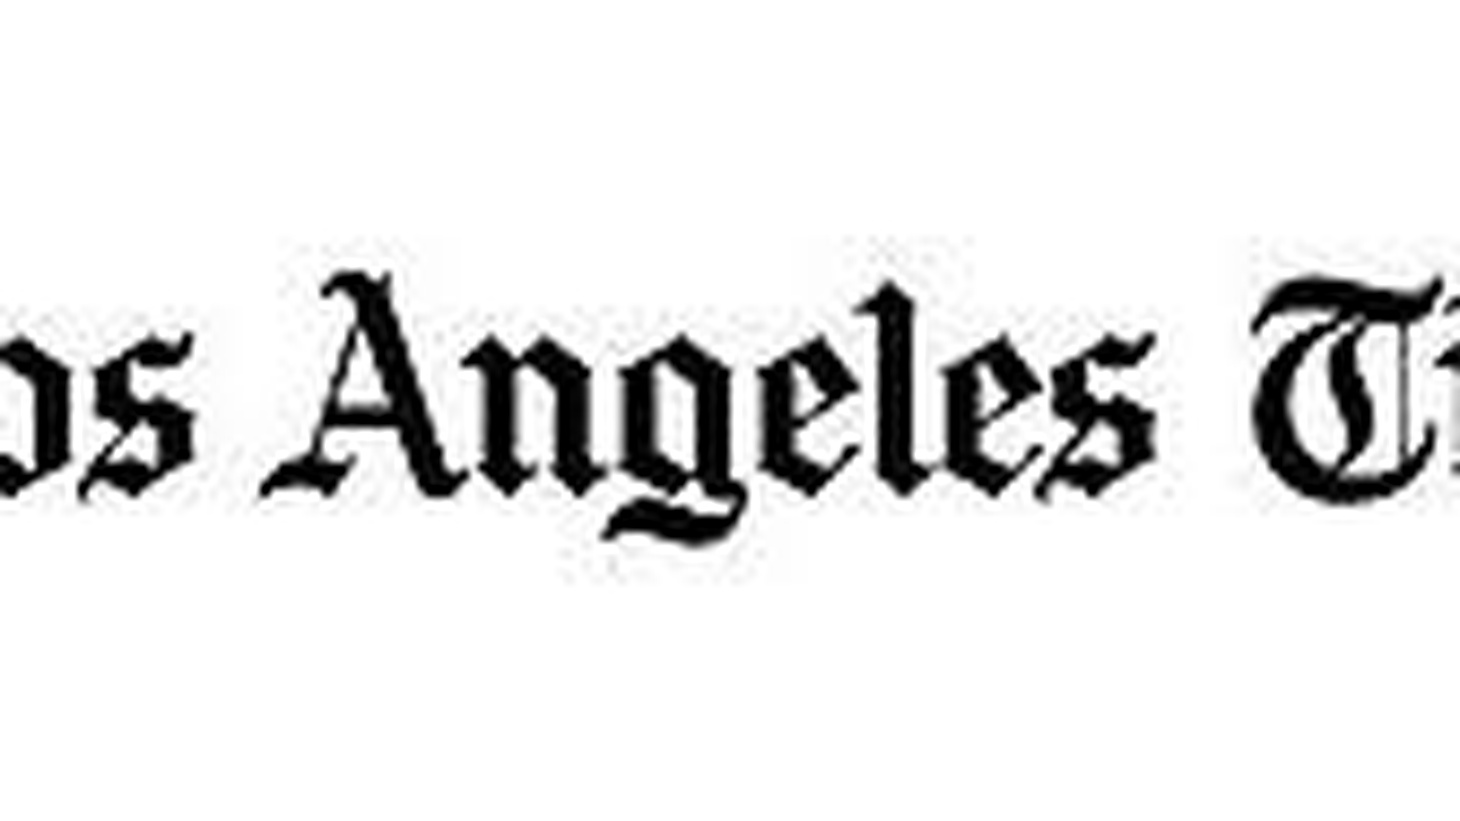 The LA Times will hold its book fair at UCLA once again this year. But reports abound that the stand-alone Sunday Book Review will be cut back, merged with another section and published on Saturday. Circulation's lower that day, so that would save money. Will it lower LA's cultural profile? Also, a wrap-up of yesterday's school board elections---and California's new presidential primary next February, in which Independents can vote for a Democrat but not for a Republican. We'll hear about party rules.